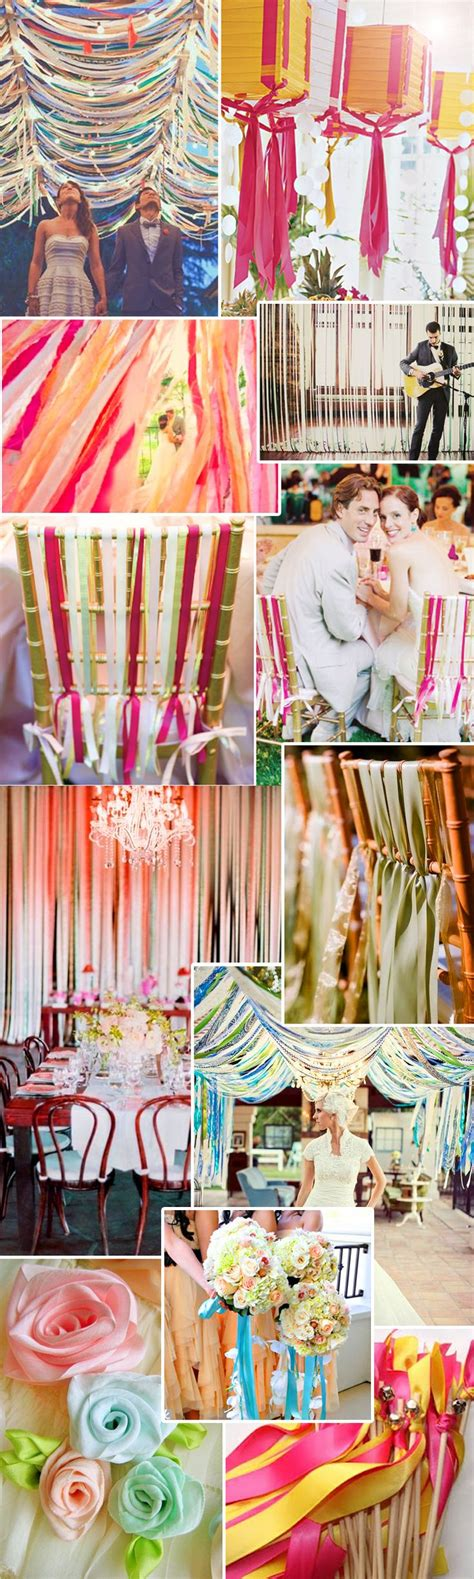 1000 Ideas About Ribbon Decorations On Pinterest White